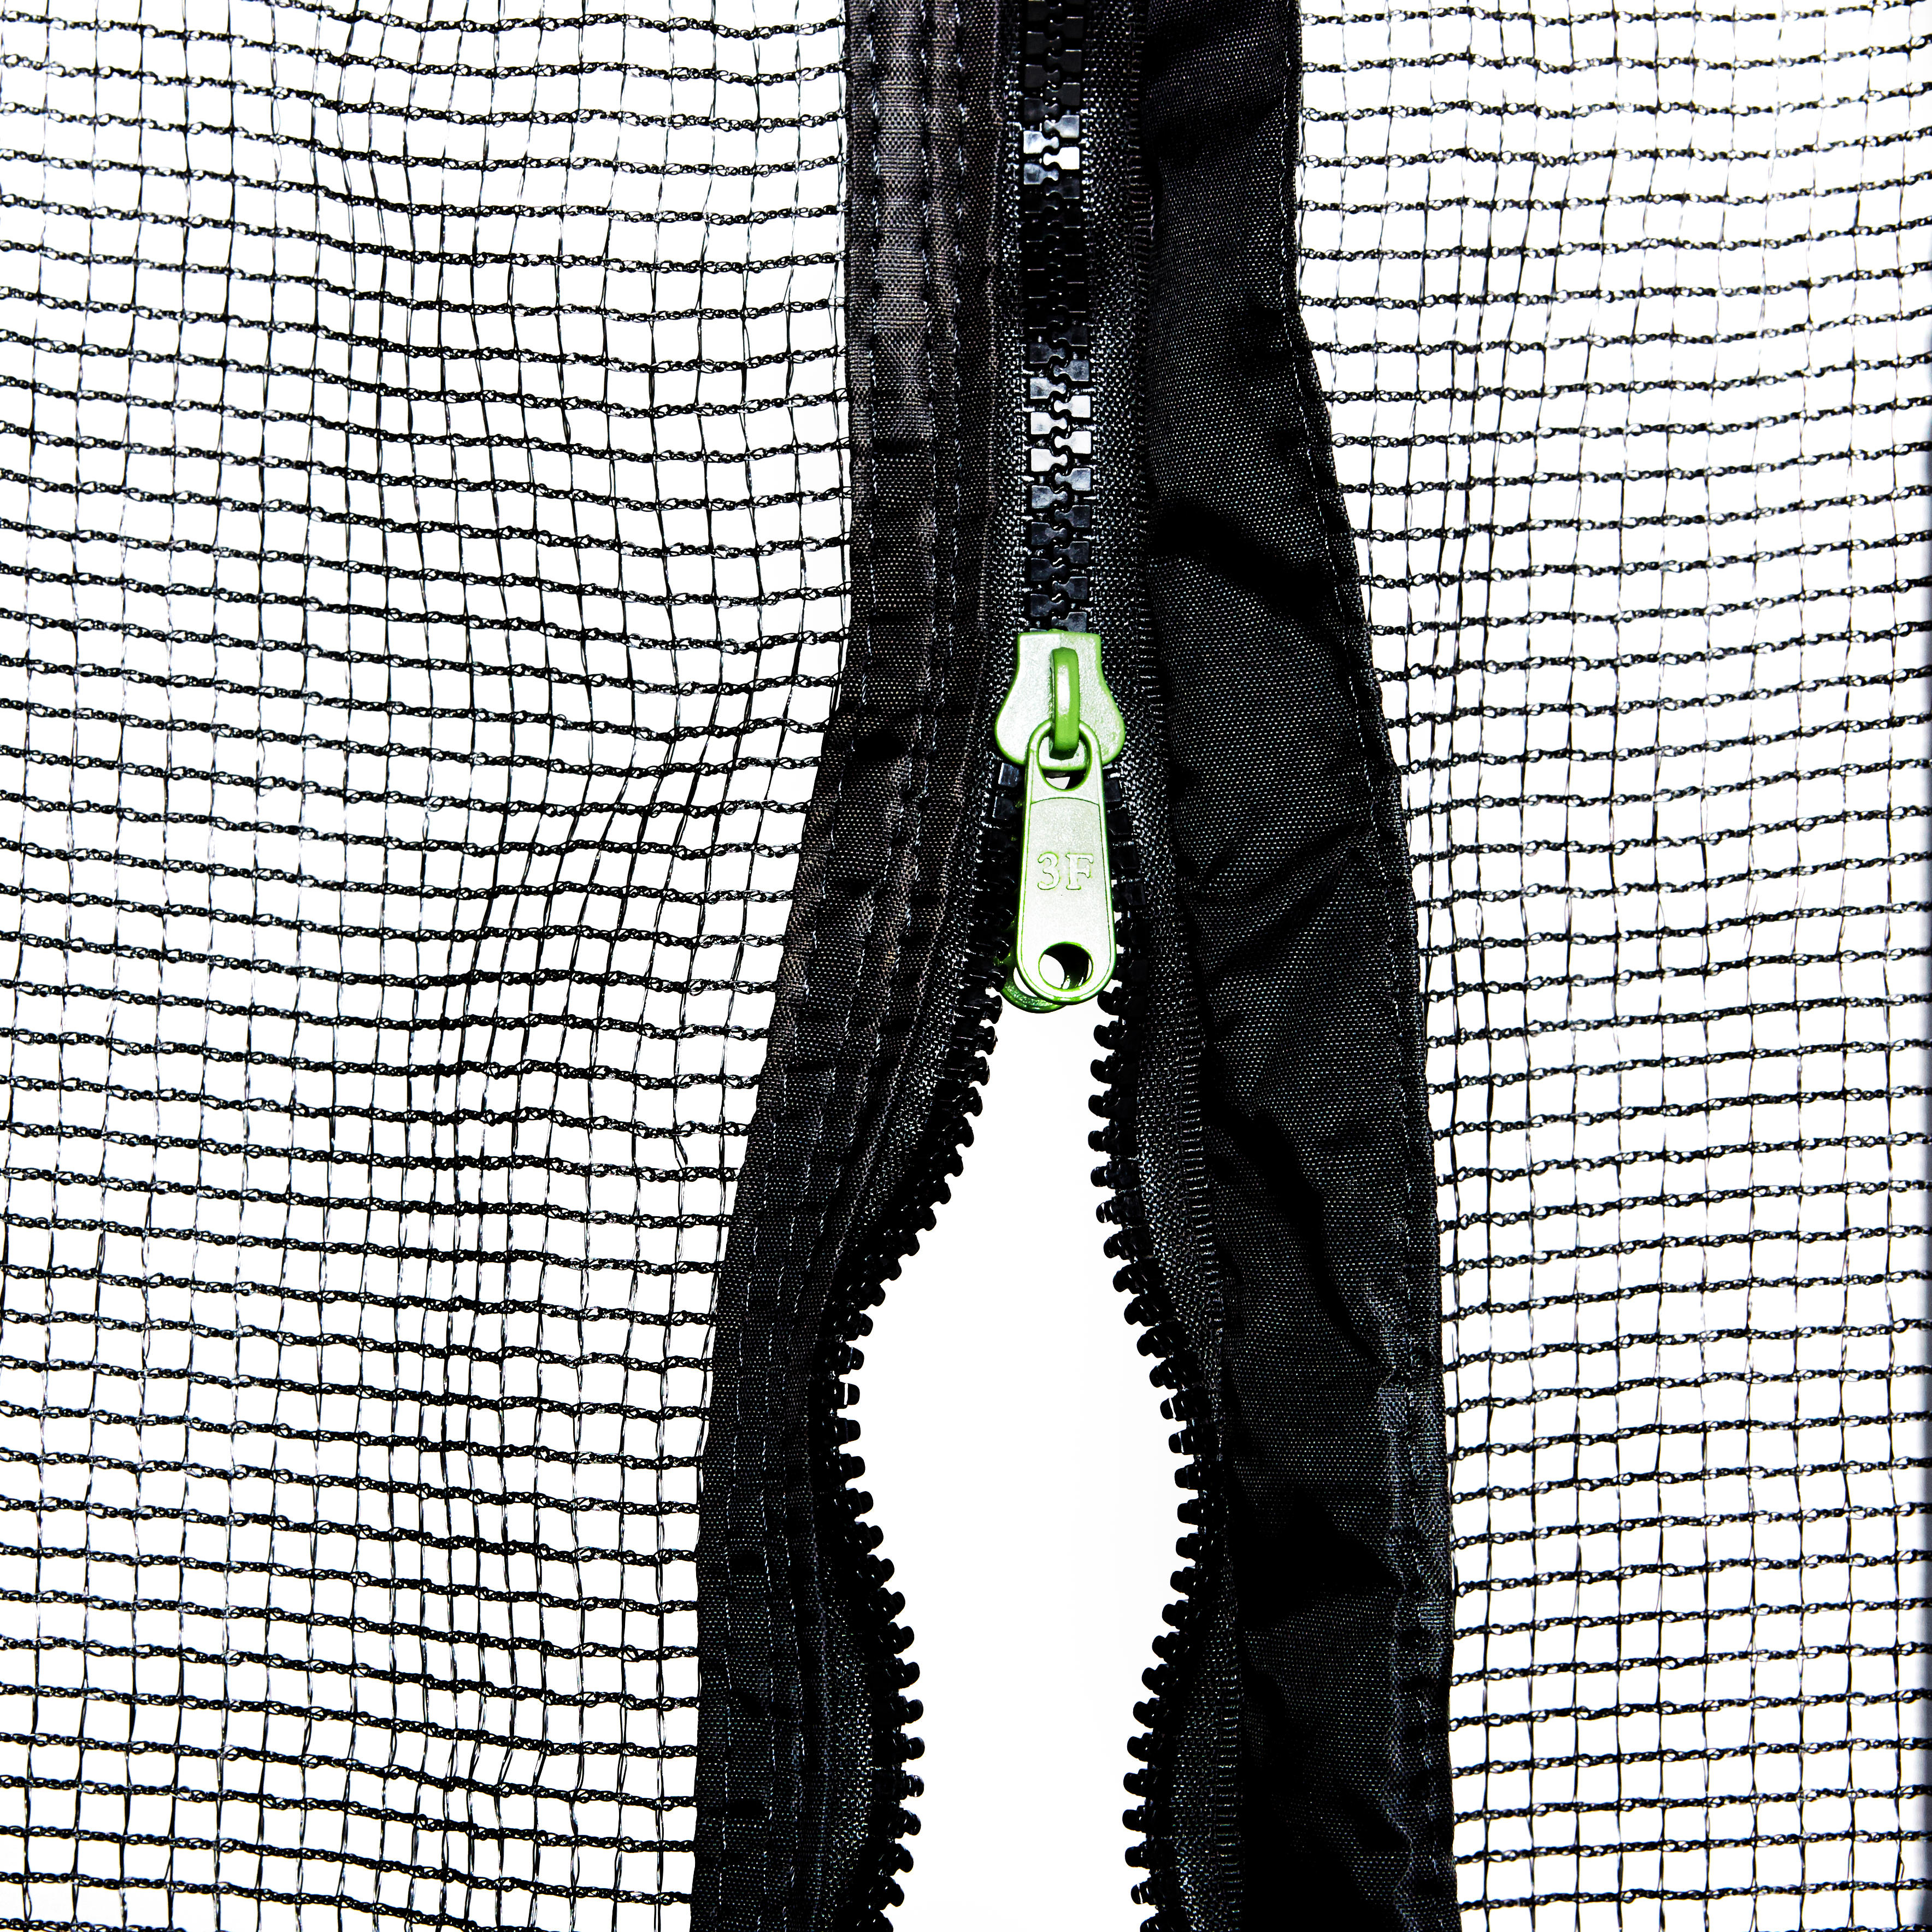 8ft Essential 240 Trampoline and Protective Netting - Green